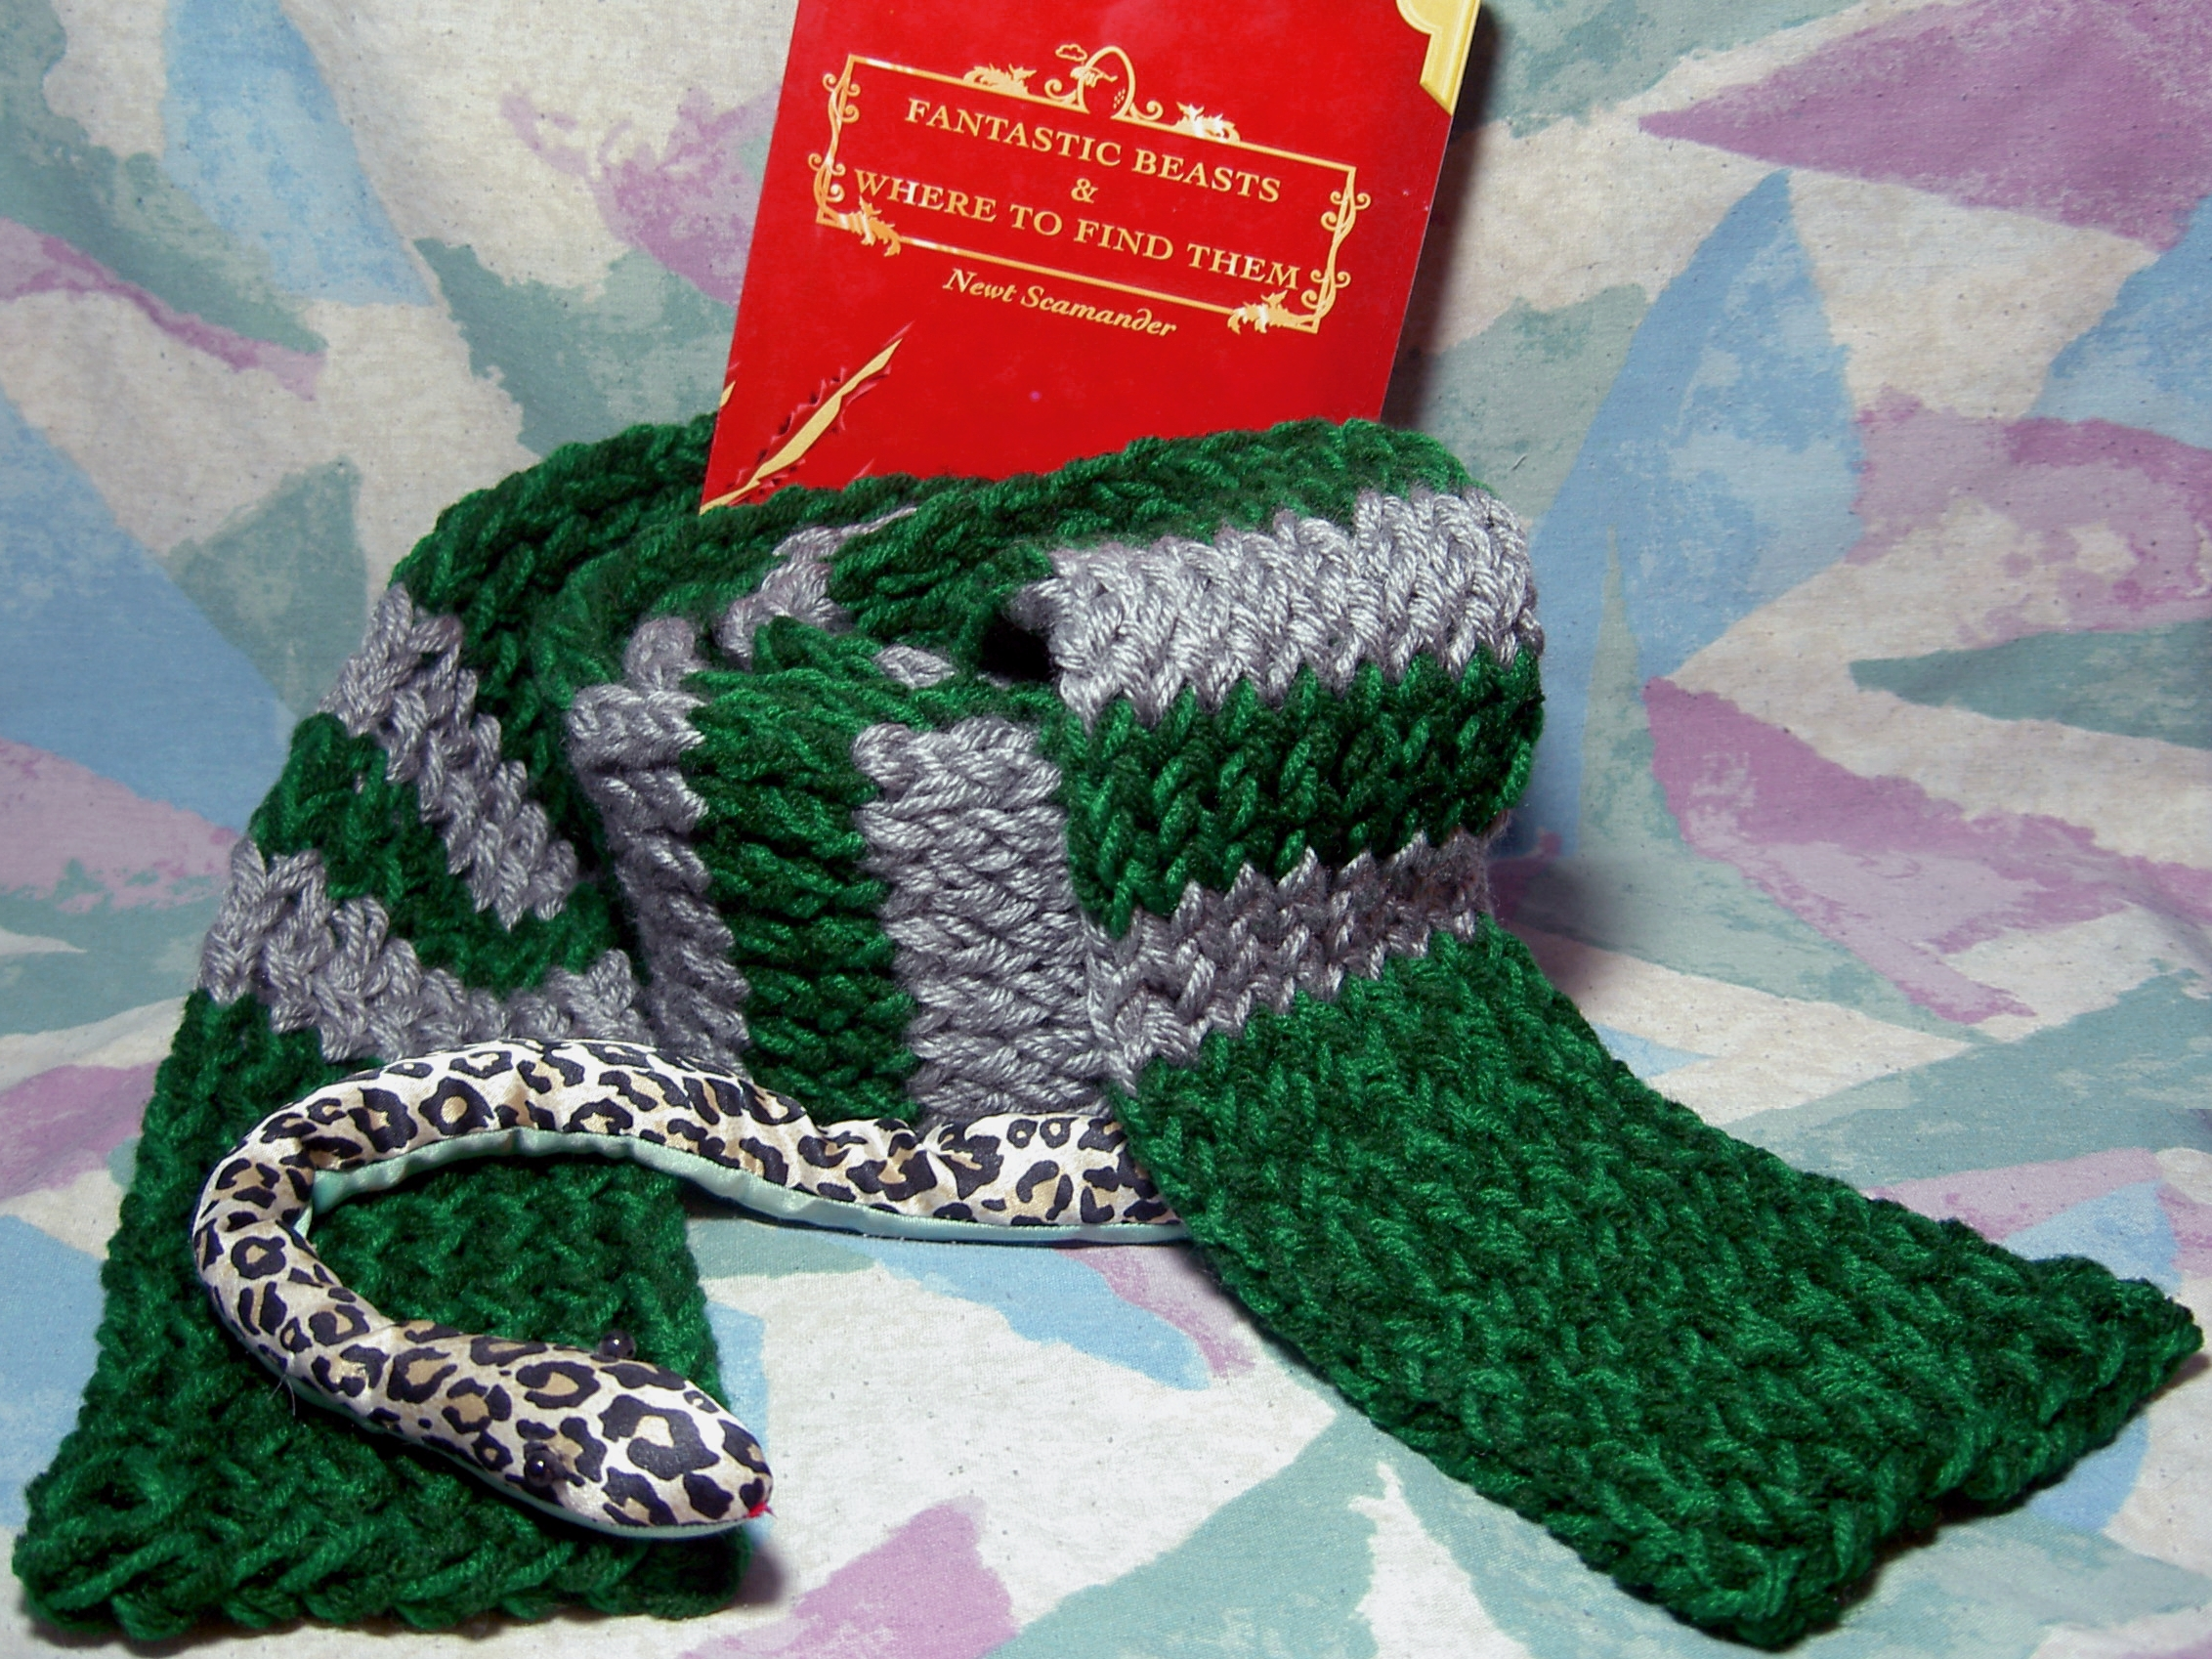 Knitting Pattern For Slytherin Scarf : Harry Potter inspired knitted Slytherin green & silver Scarf on Storenvy